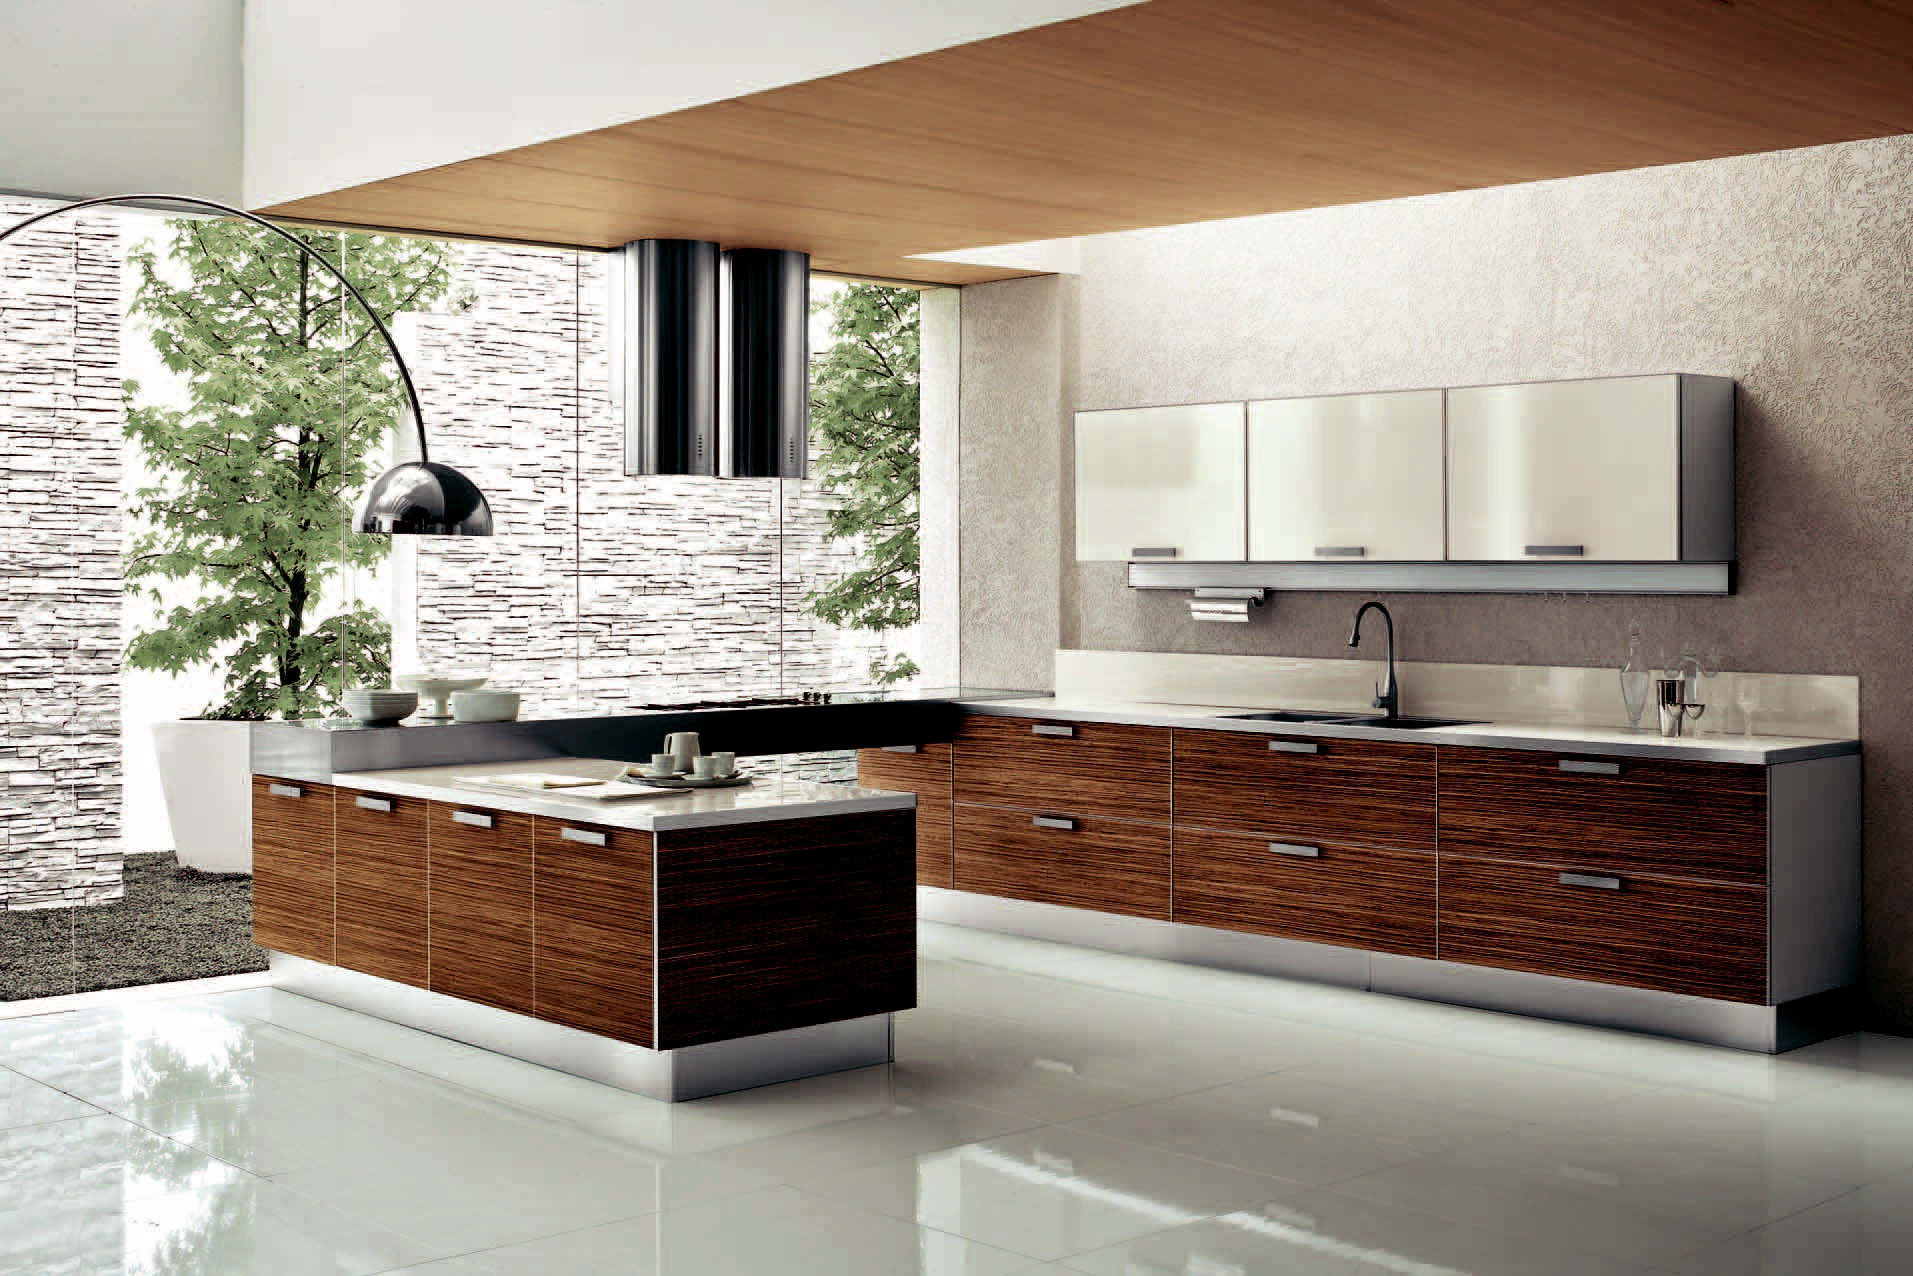 Beyond kitchens kitchen cupboards cape town kitchens Modern kitchen design magazine